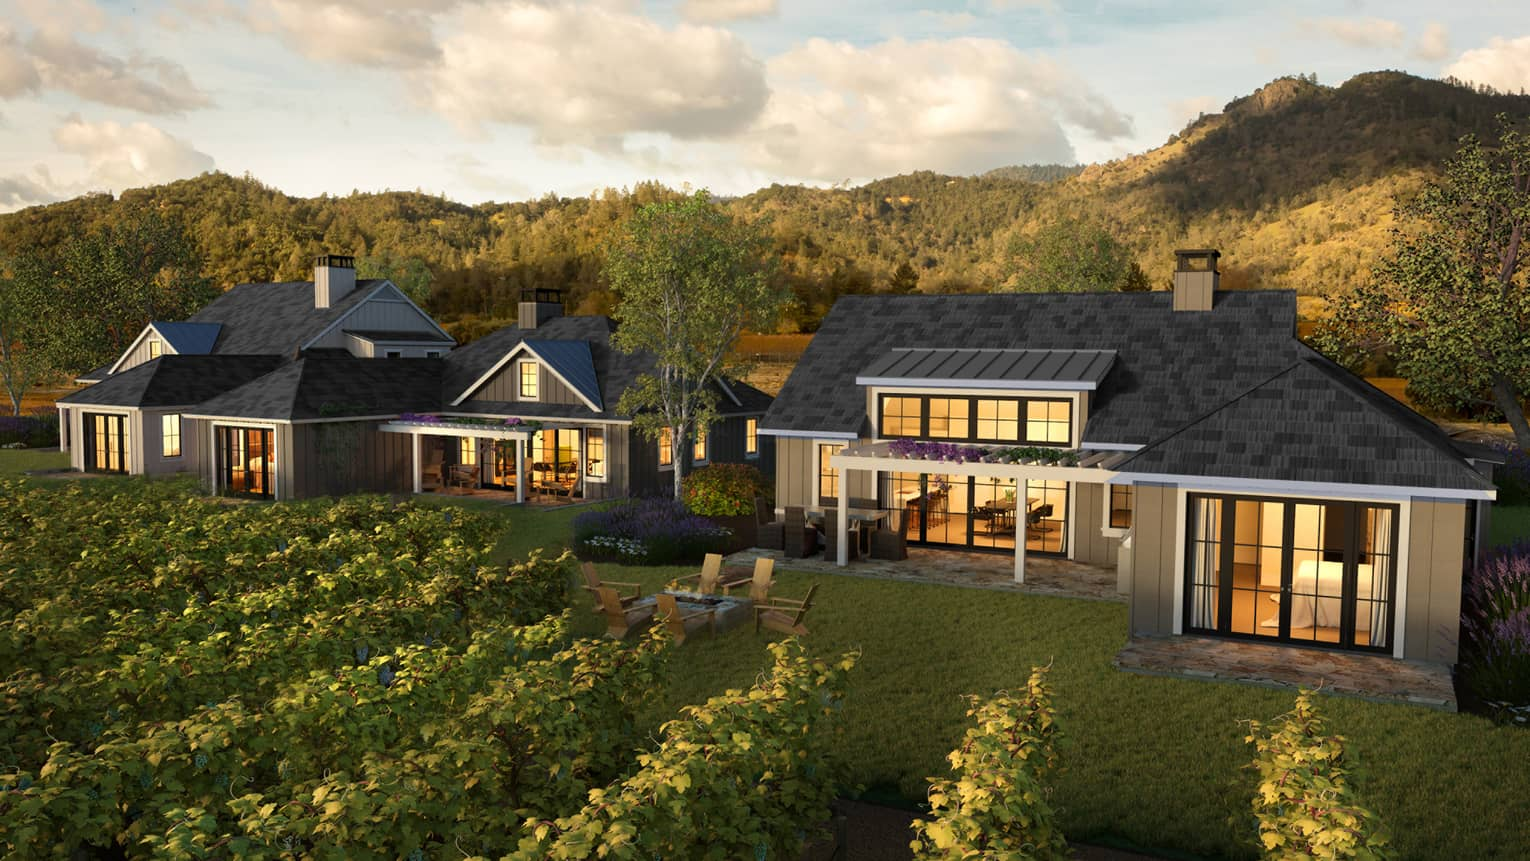 Rendering of view across vineyard to two residence exteriors in front of mountains